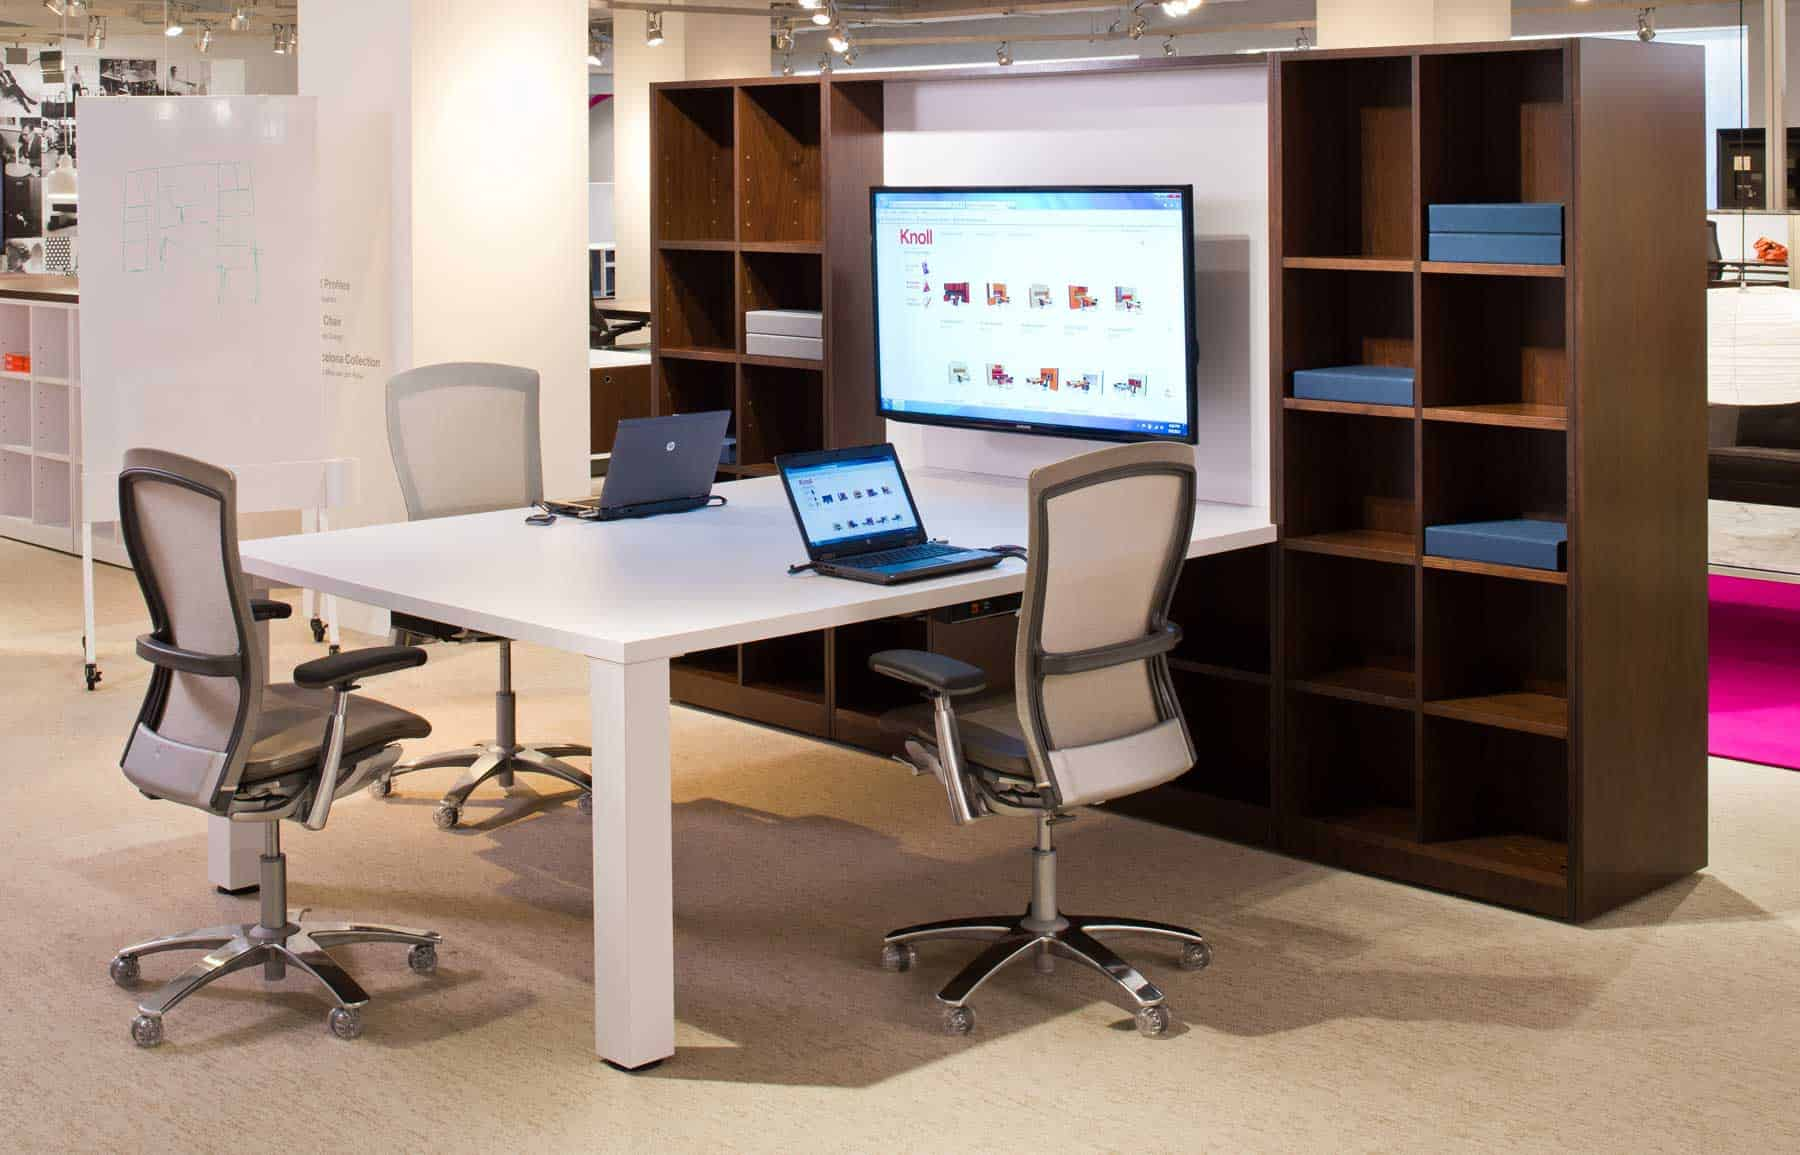 Knoll office furniture from Systems Furniture